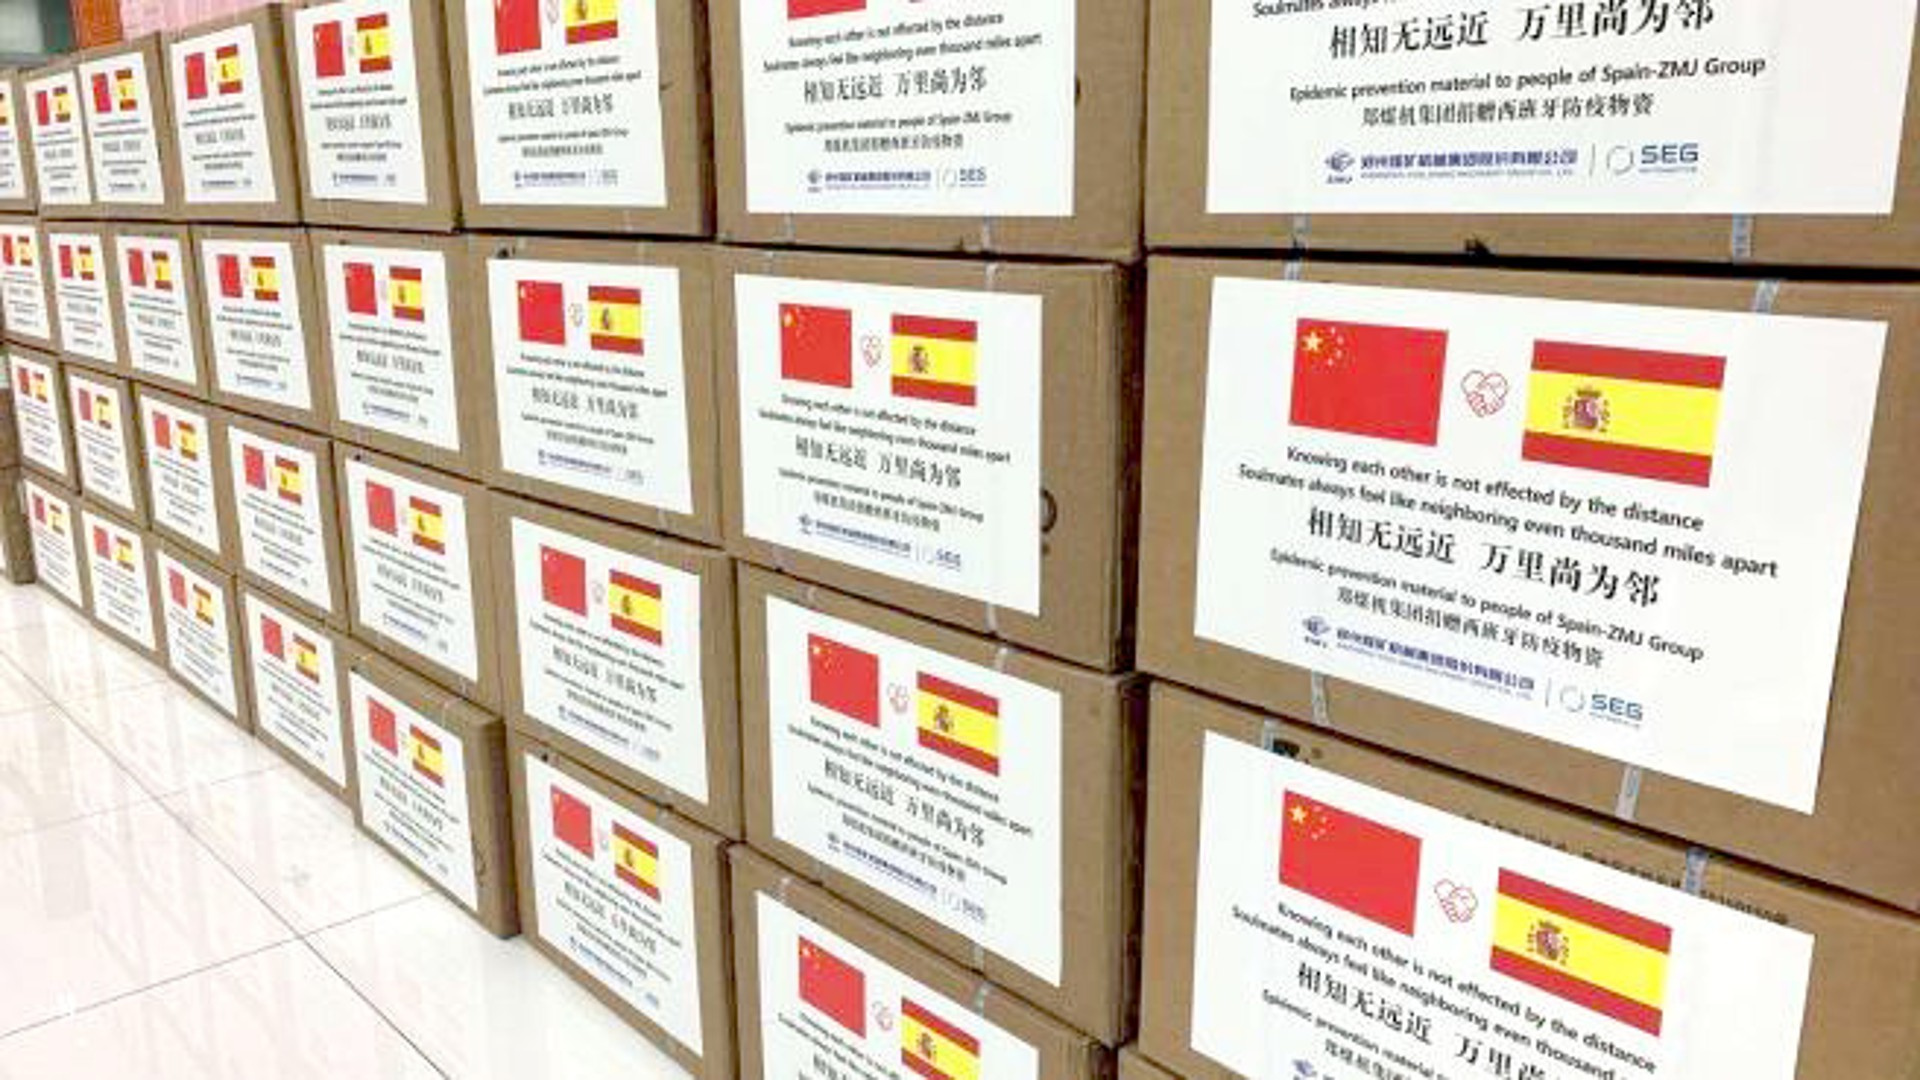 Boxes of clinical face masks from China to support public health in Spain